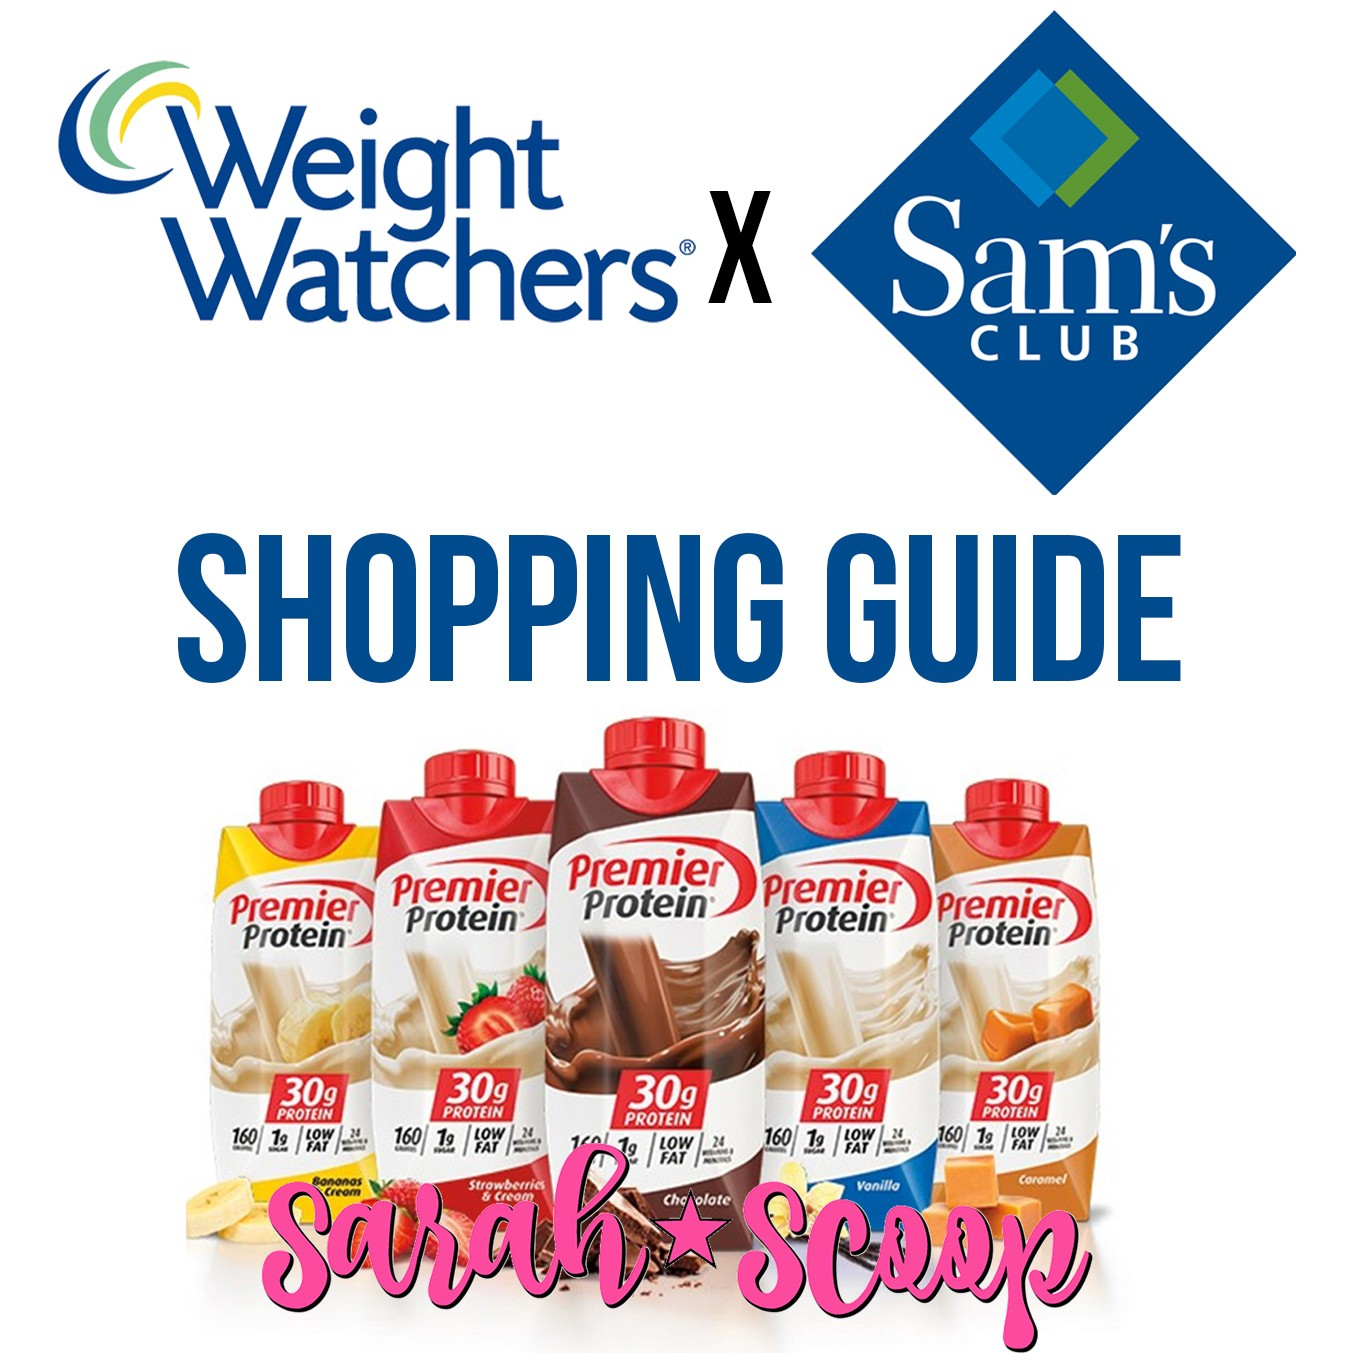 Sams Club Hours Of Operation And Holiday Hours Hours Guide >> Weight Watchers Sams Club Guide Sarah Scoop